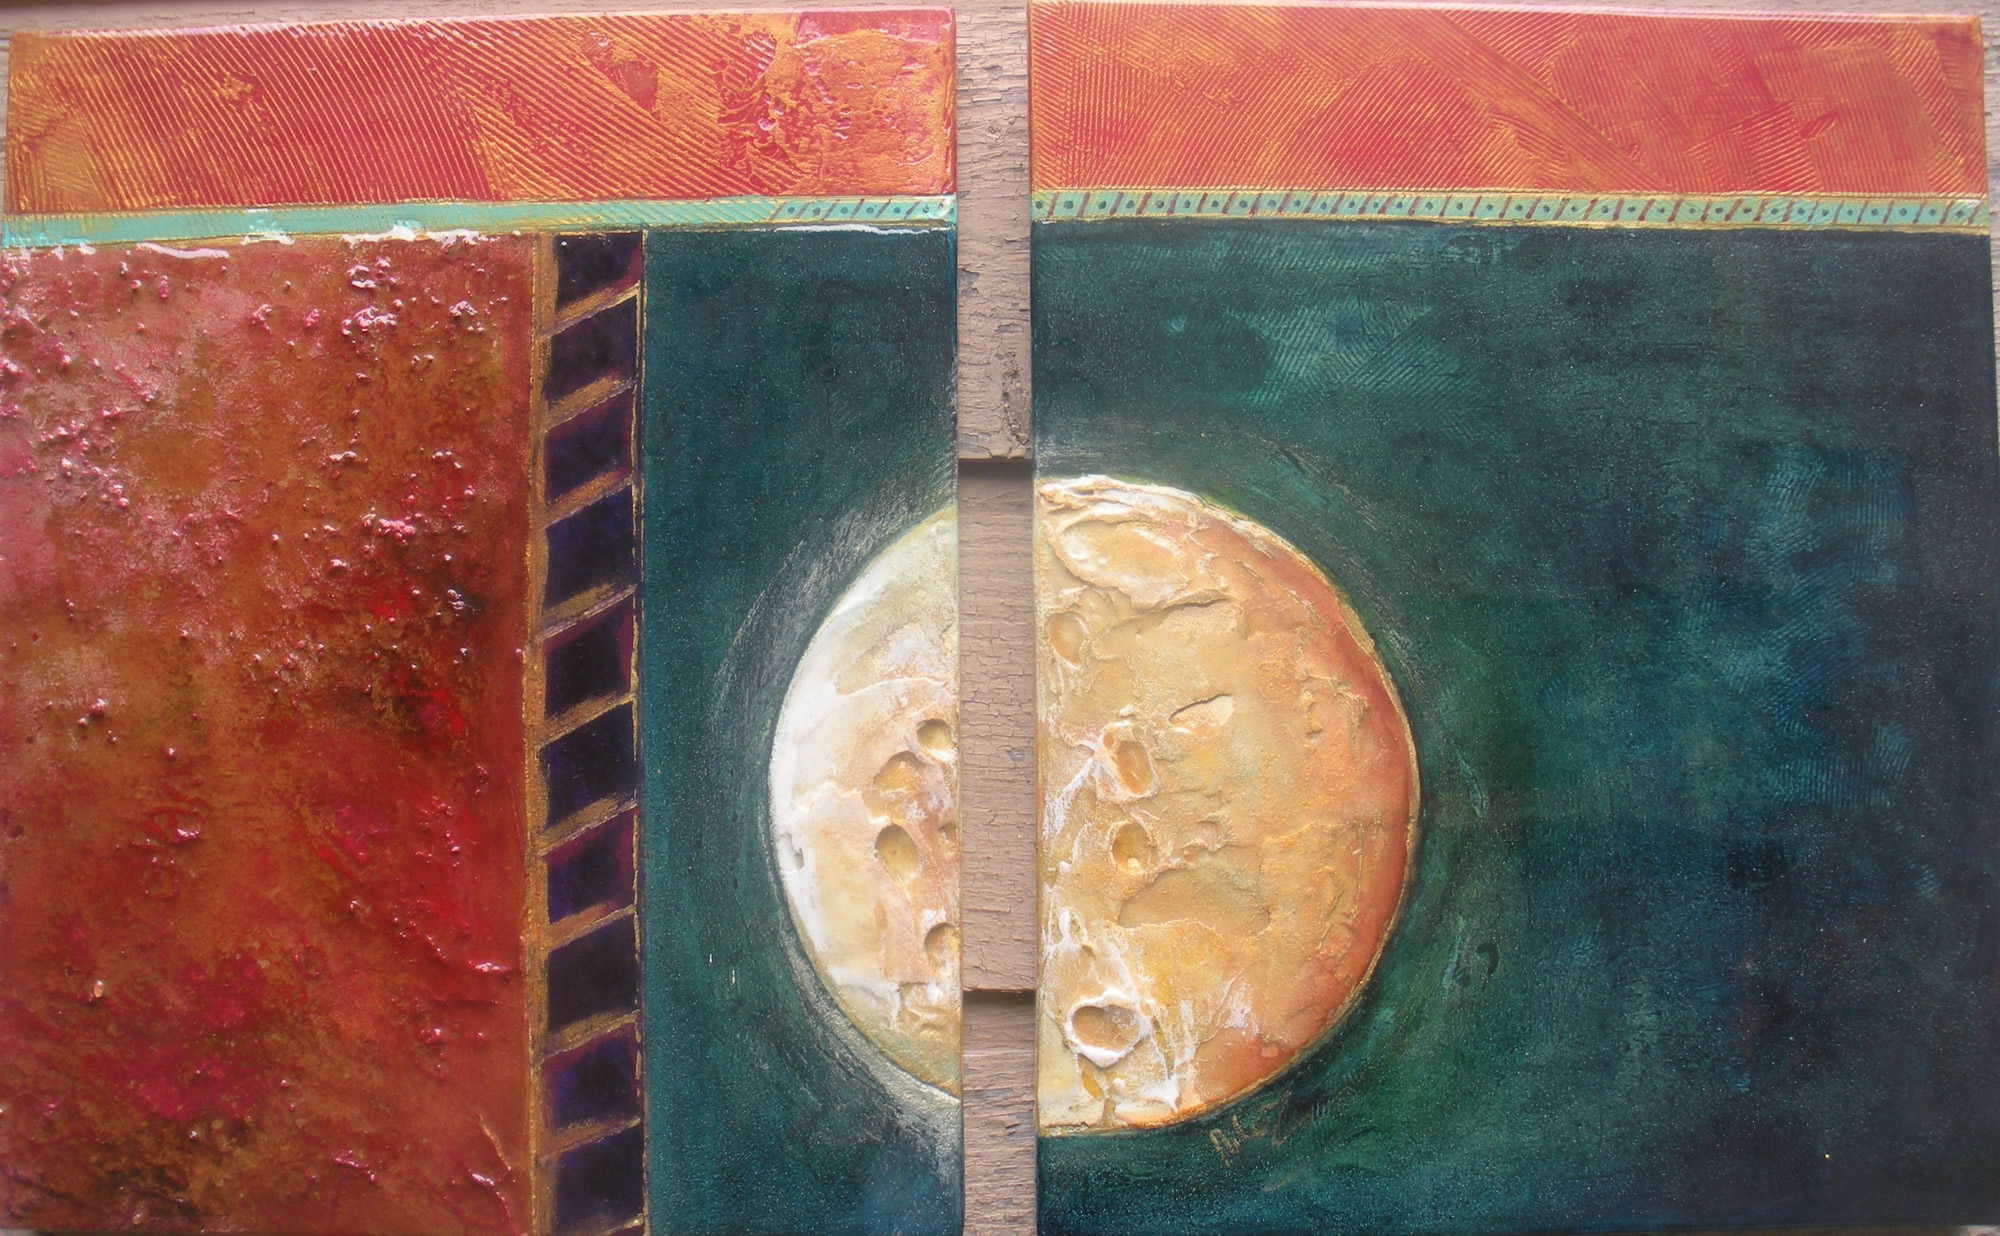 rita-schwab-good-night-moon-diptych-sand-and-oils-into-hightly-textured-fresco-resin-finish-18x28-650-00